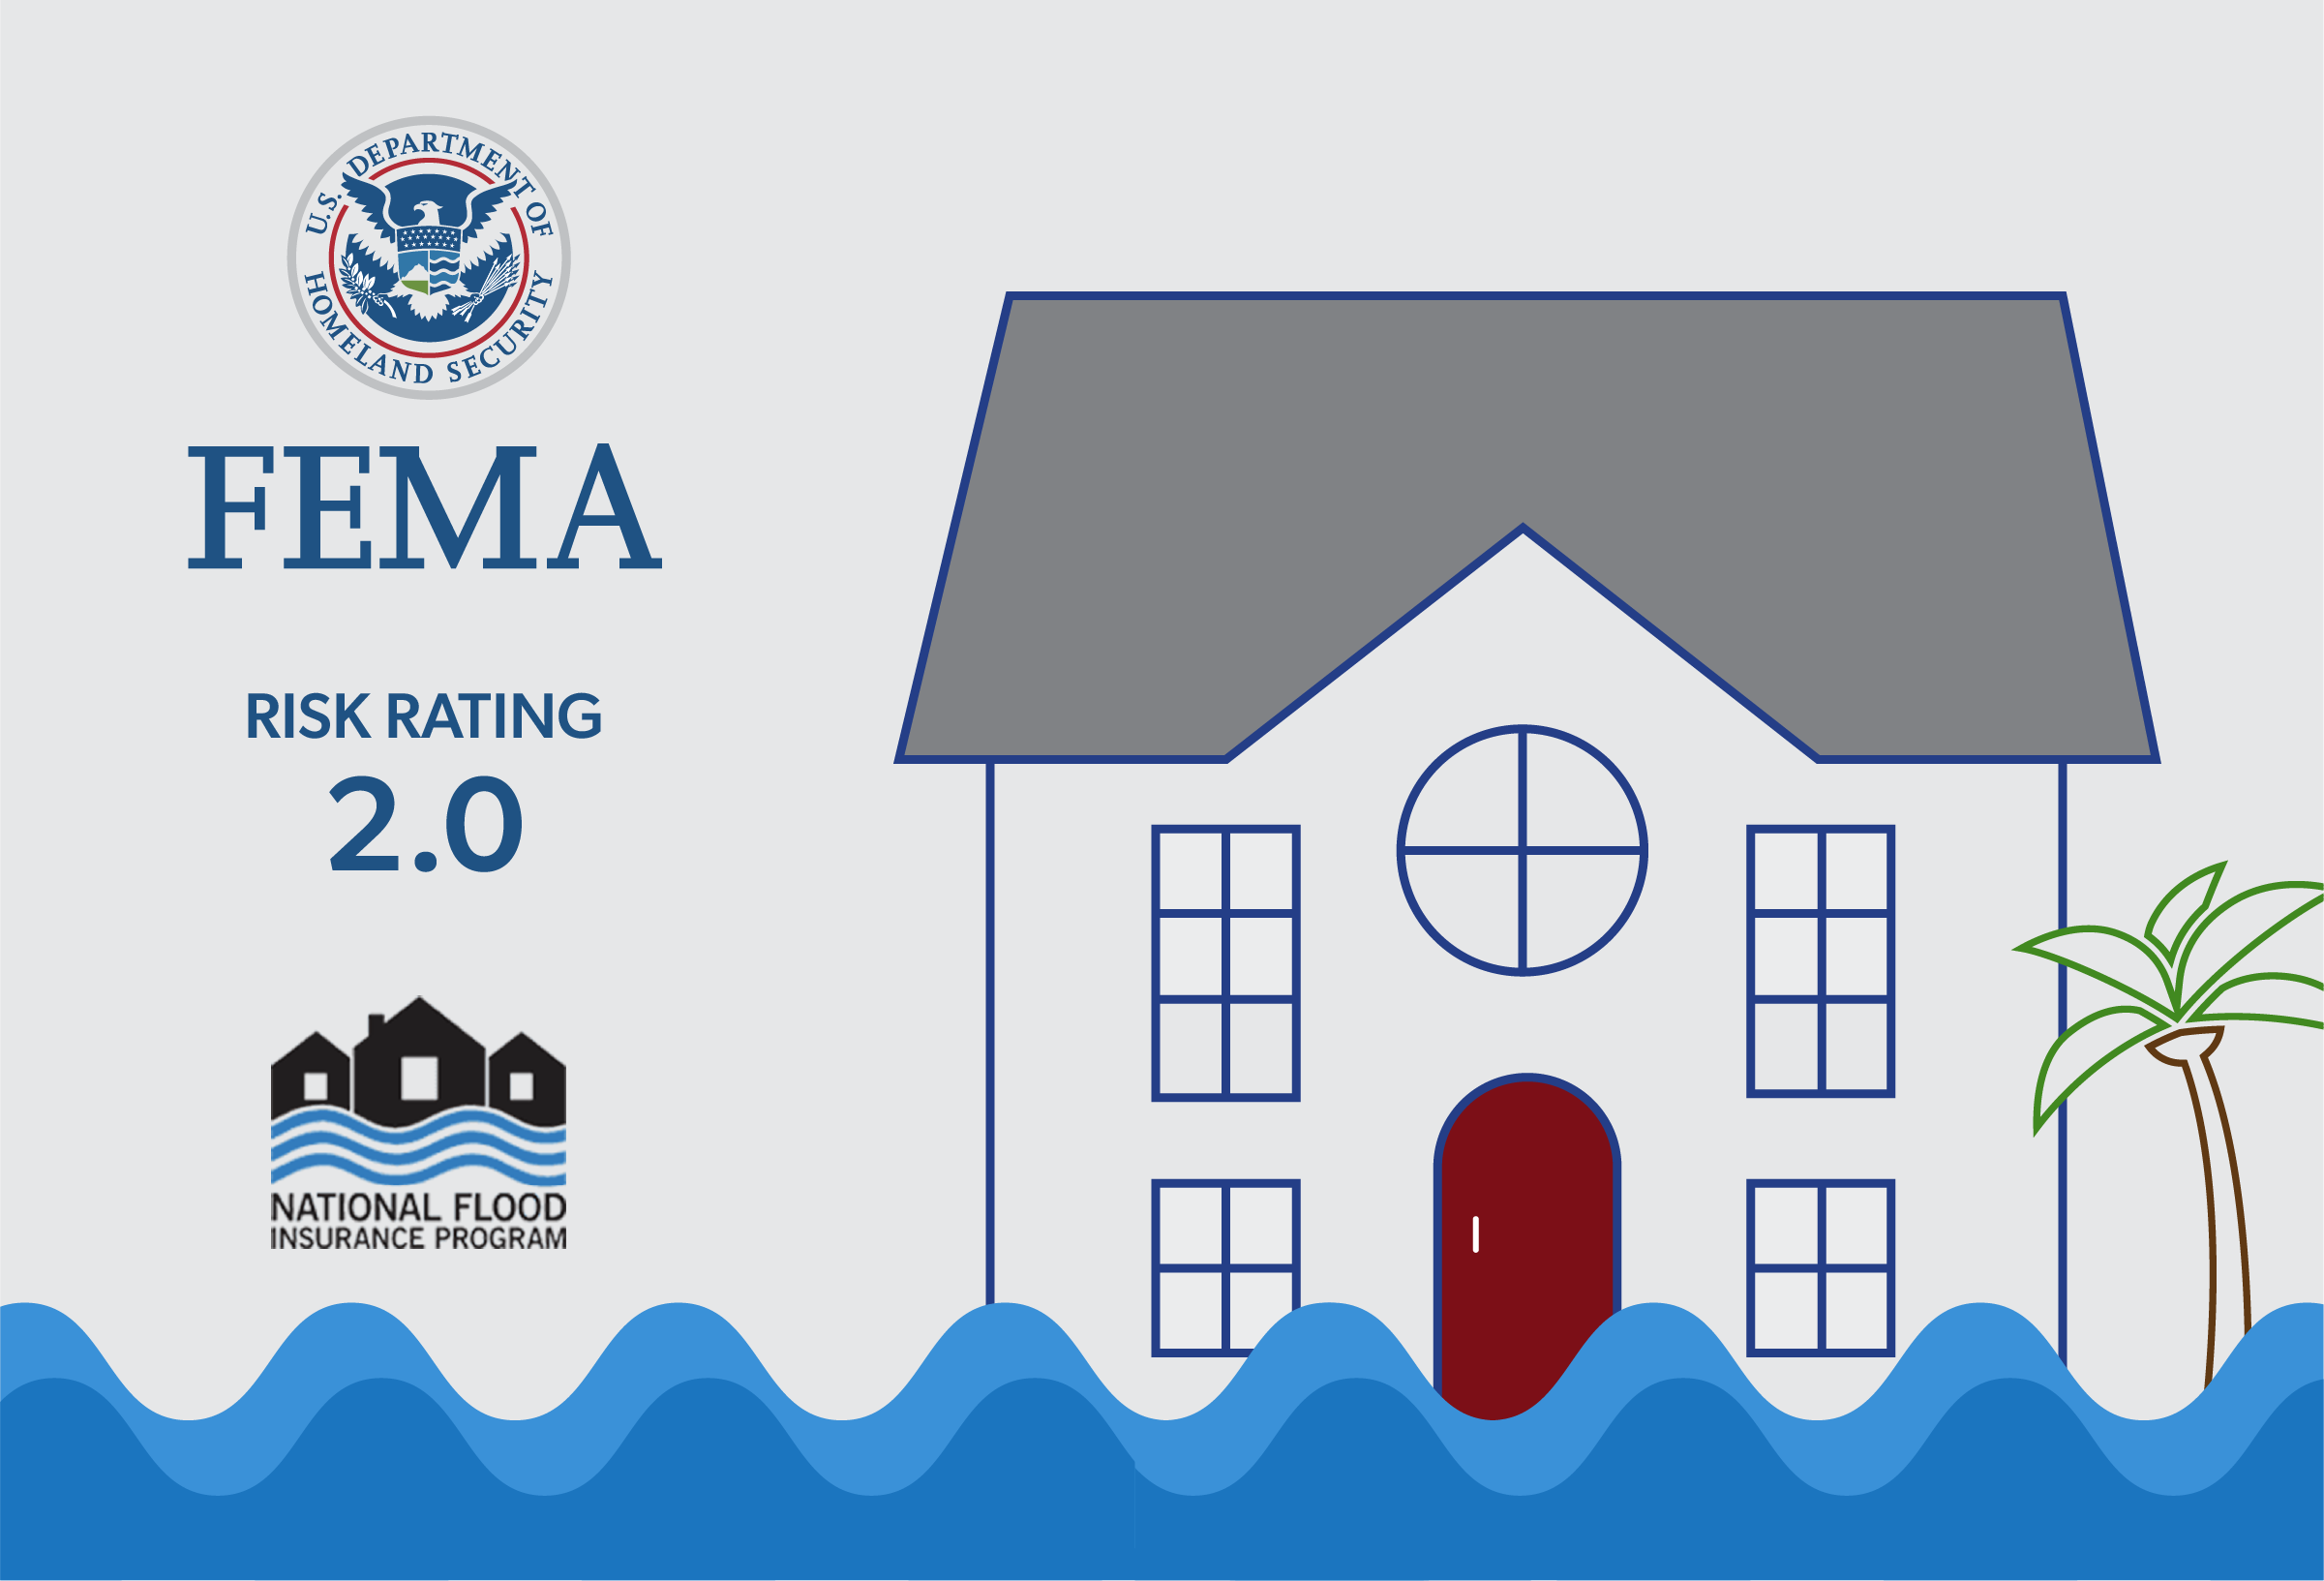 Leverage FEMA's new Risk Rating 2.0 to generate business